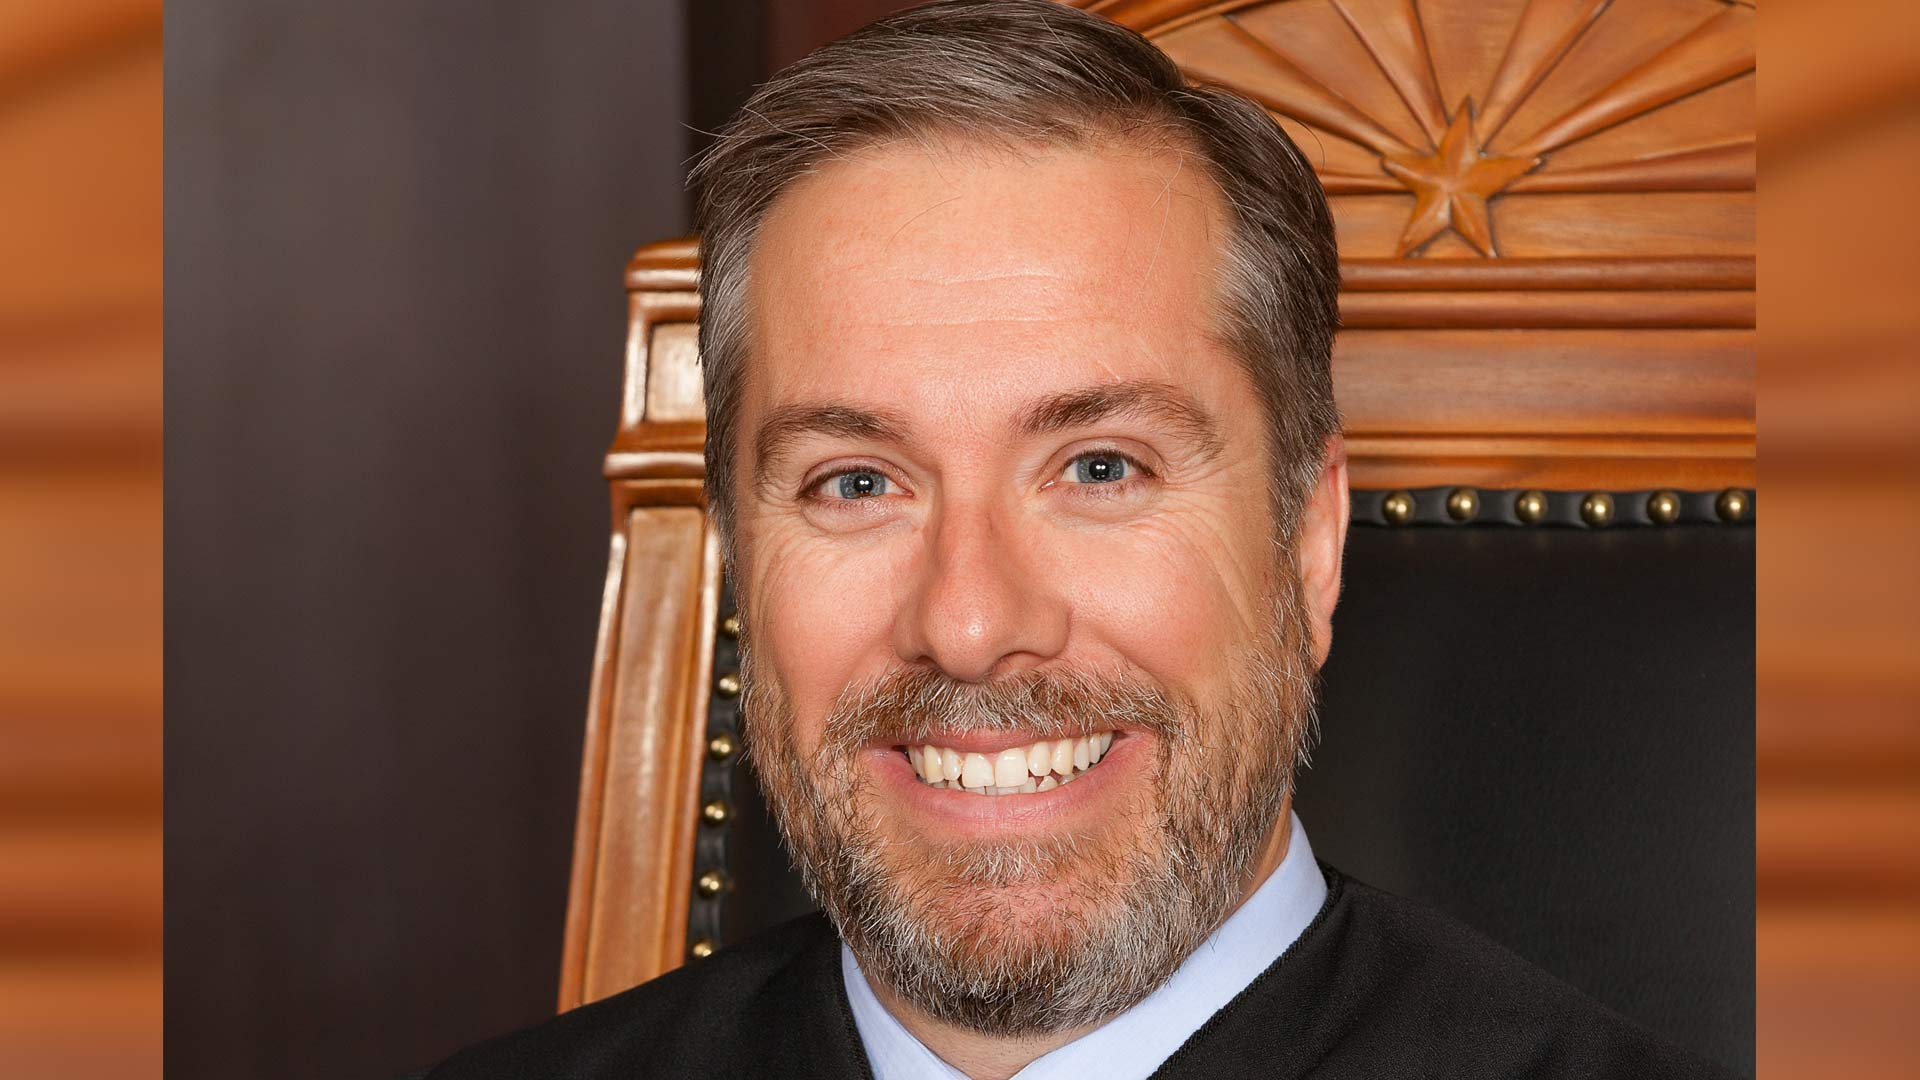 James P. Beene was named to the Arizona Supreme Court by Gov. Doug Ducey in April 2019.